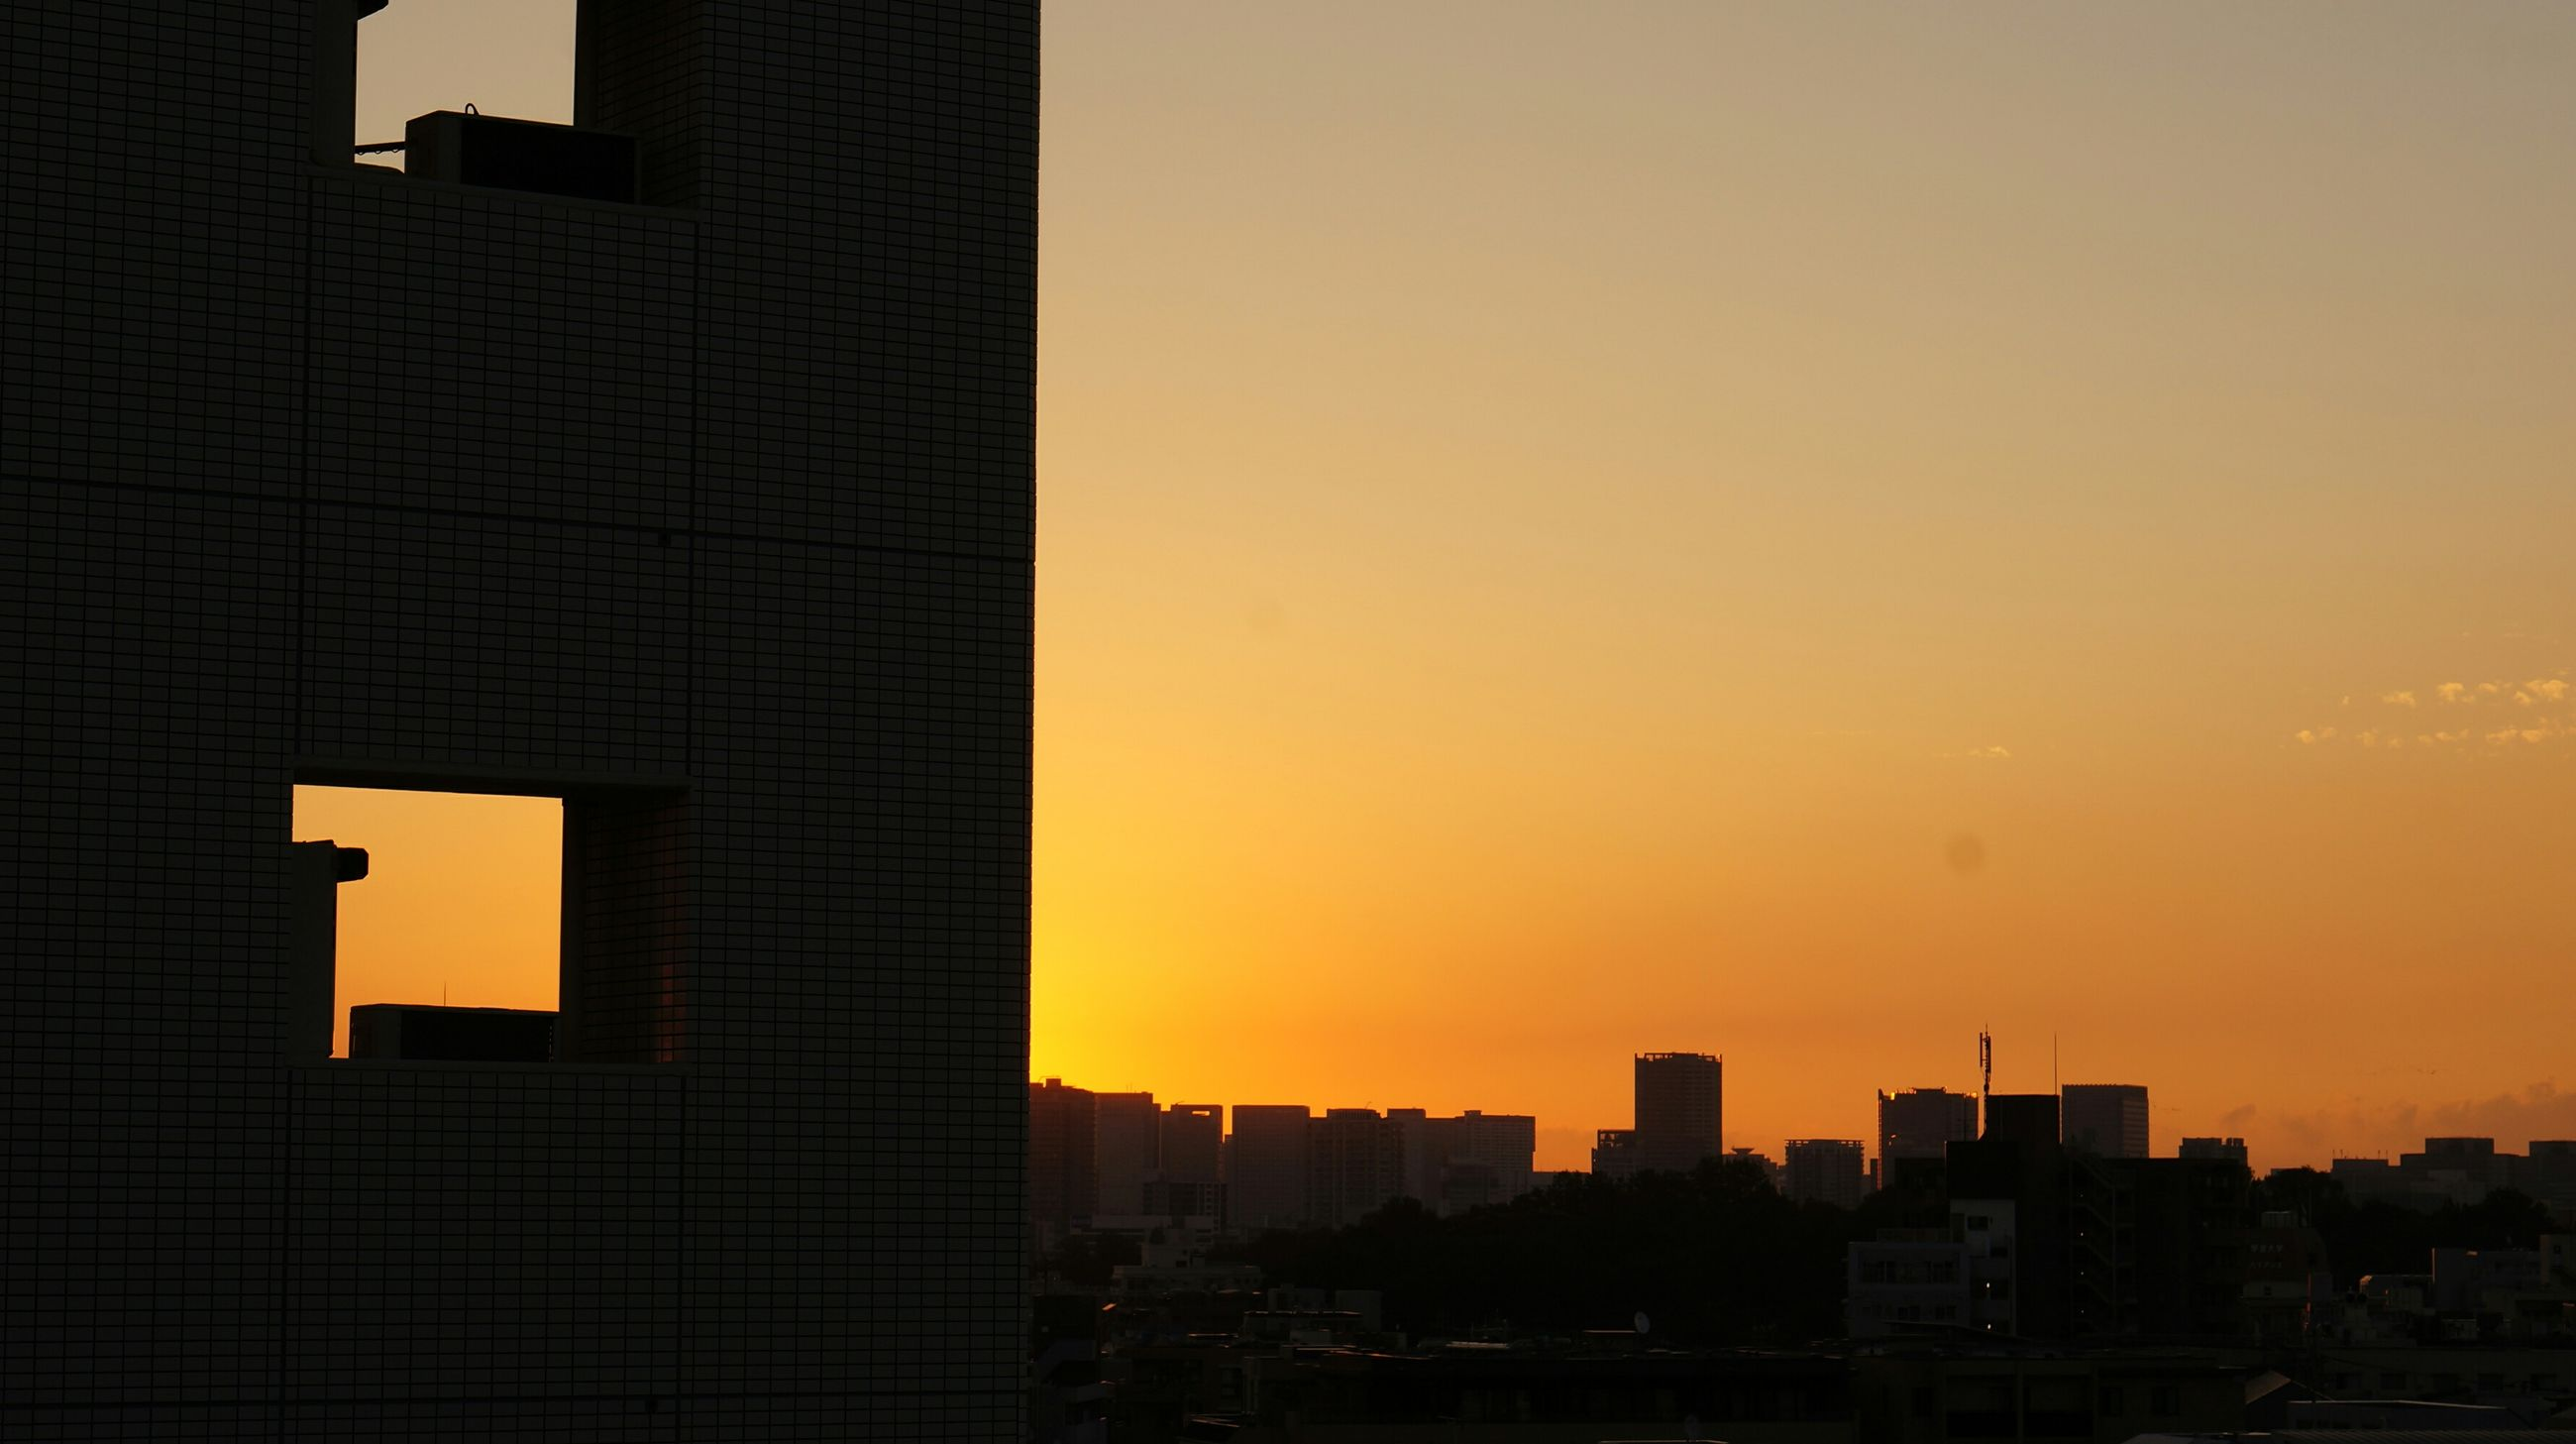 building exterior, architecture, sunset, built structure, city, skyscraper, orange color, modern, clear sky, office building, tower, tall - high, copy space, cityscape, building, silhouette, city life, urban skyline, sky, outdoors